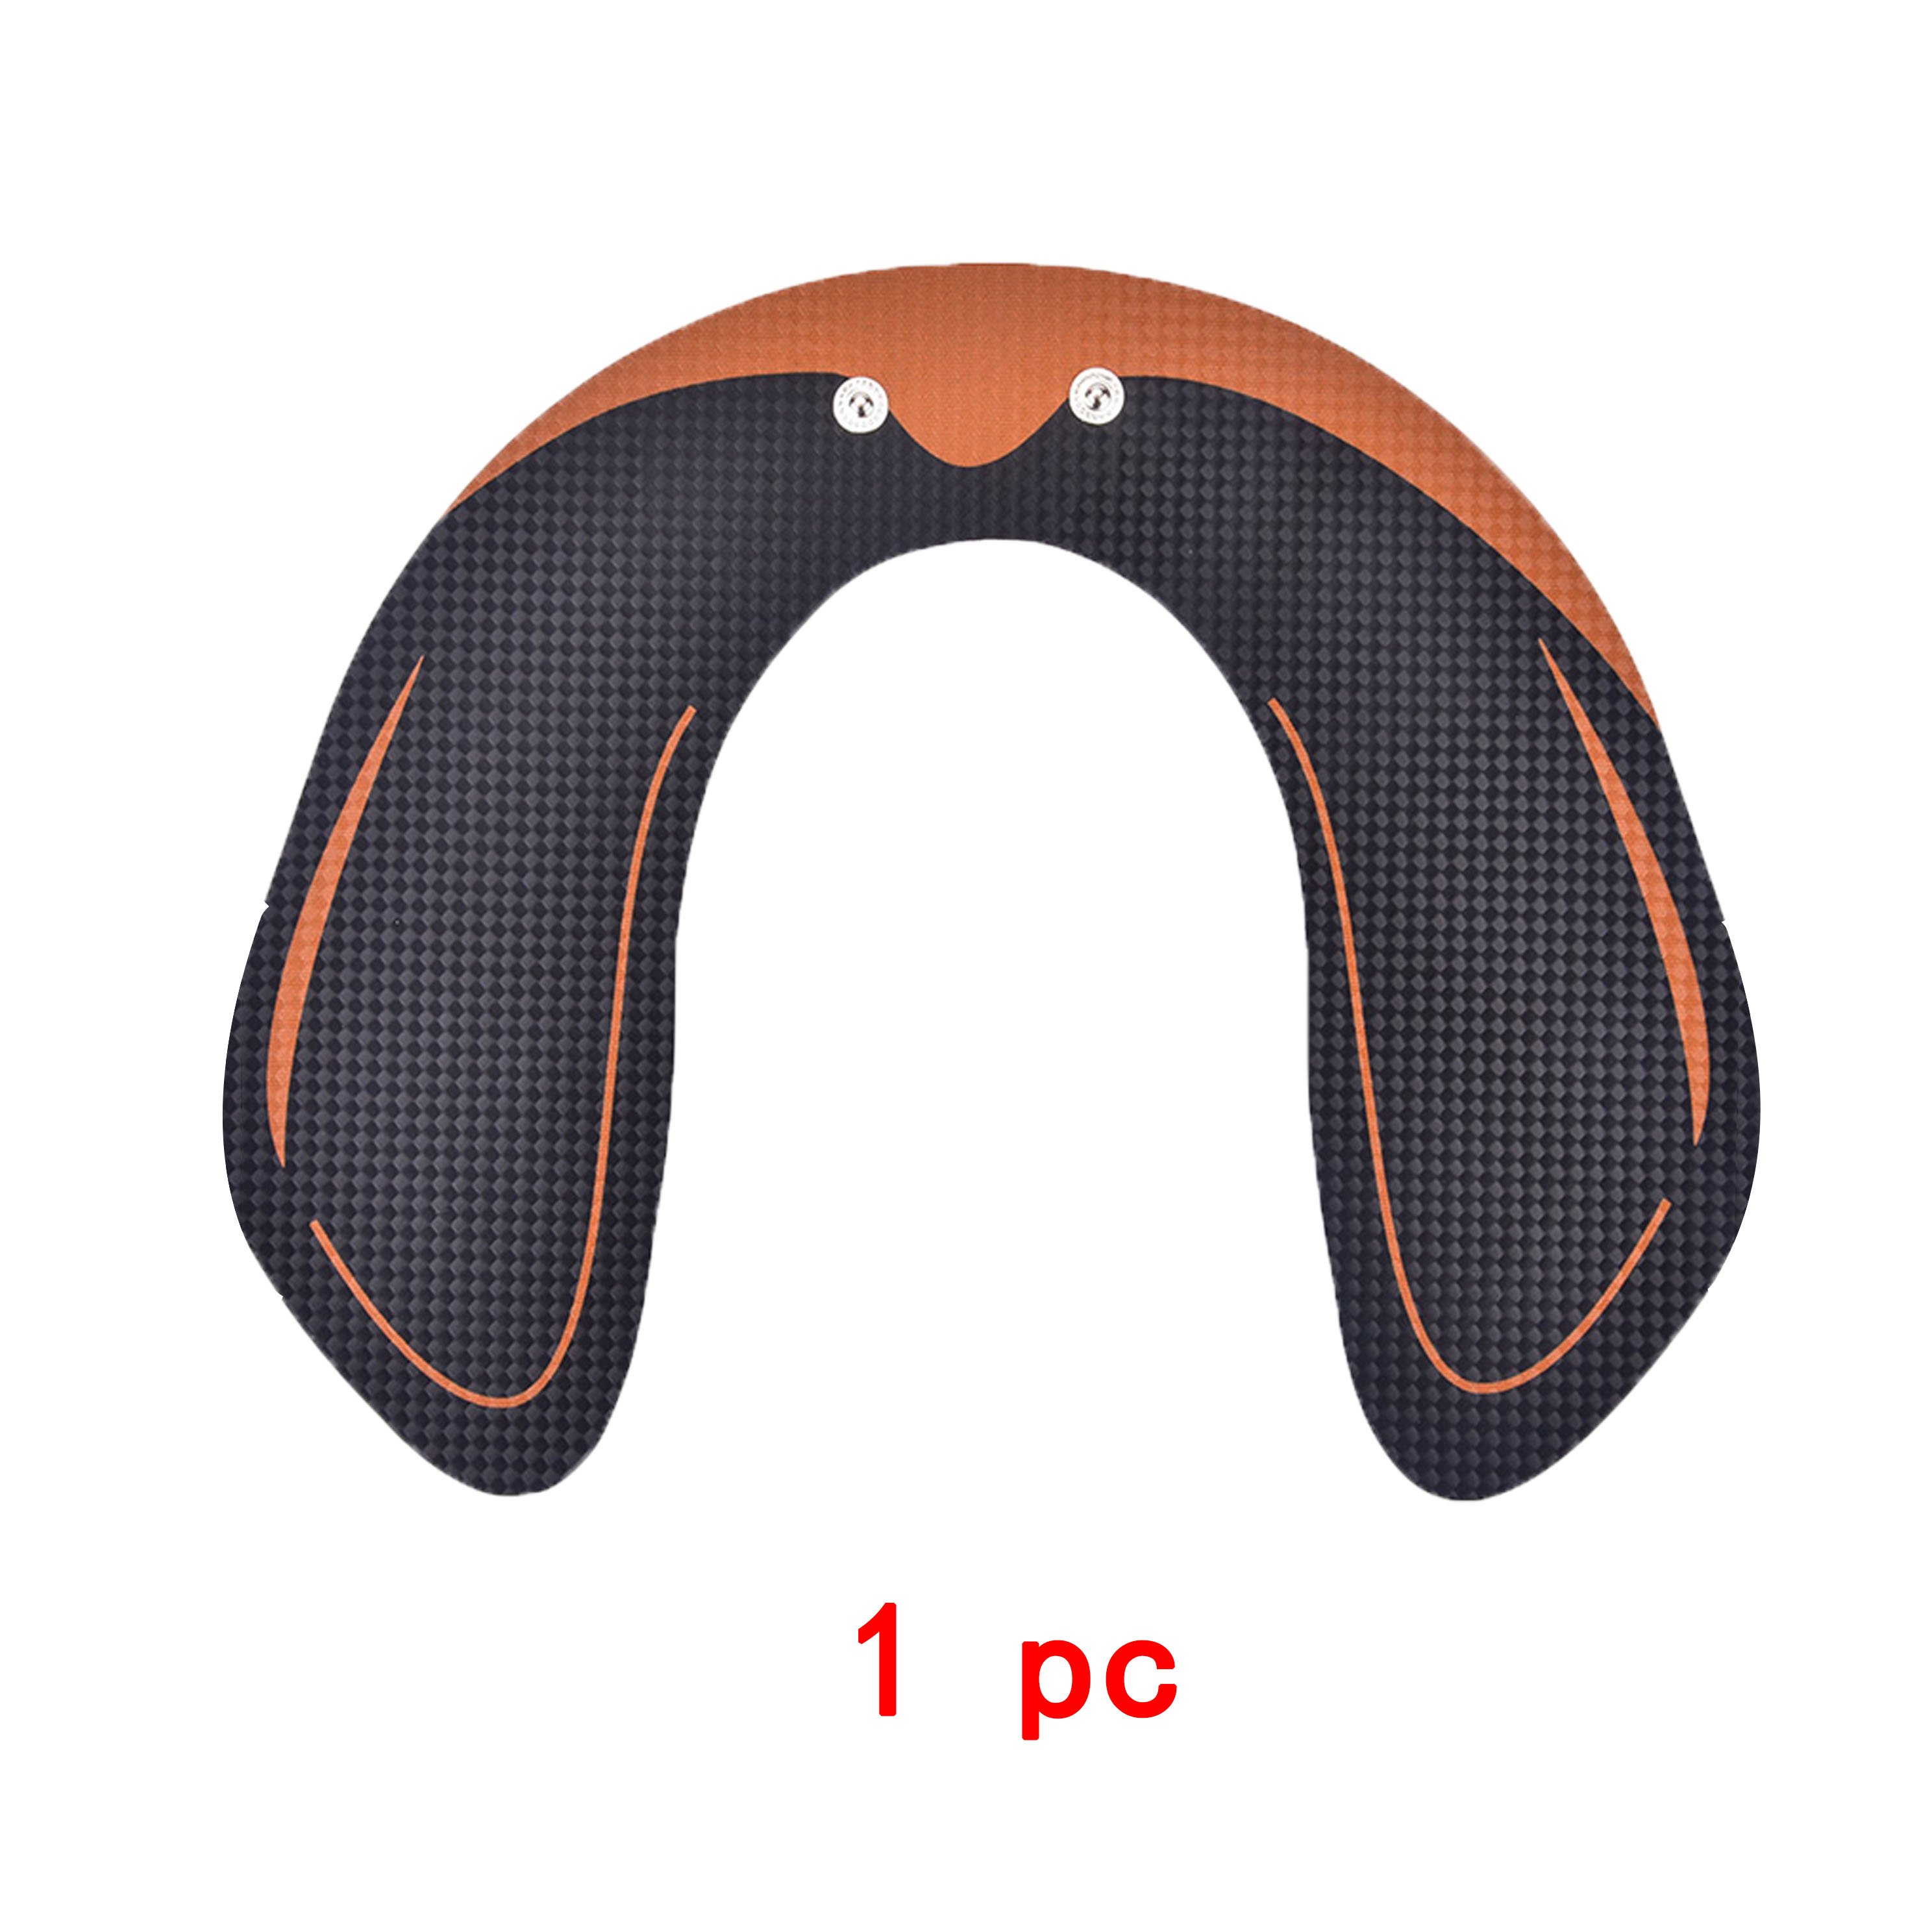 1pc Replacement Part Muscle Stimulator EMS Figure Body Slimming Machine Abdominal Muscle Tens Exercise Slim Belt Rechargeable in Massage Relaxation from Beauty Health